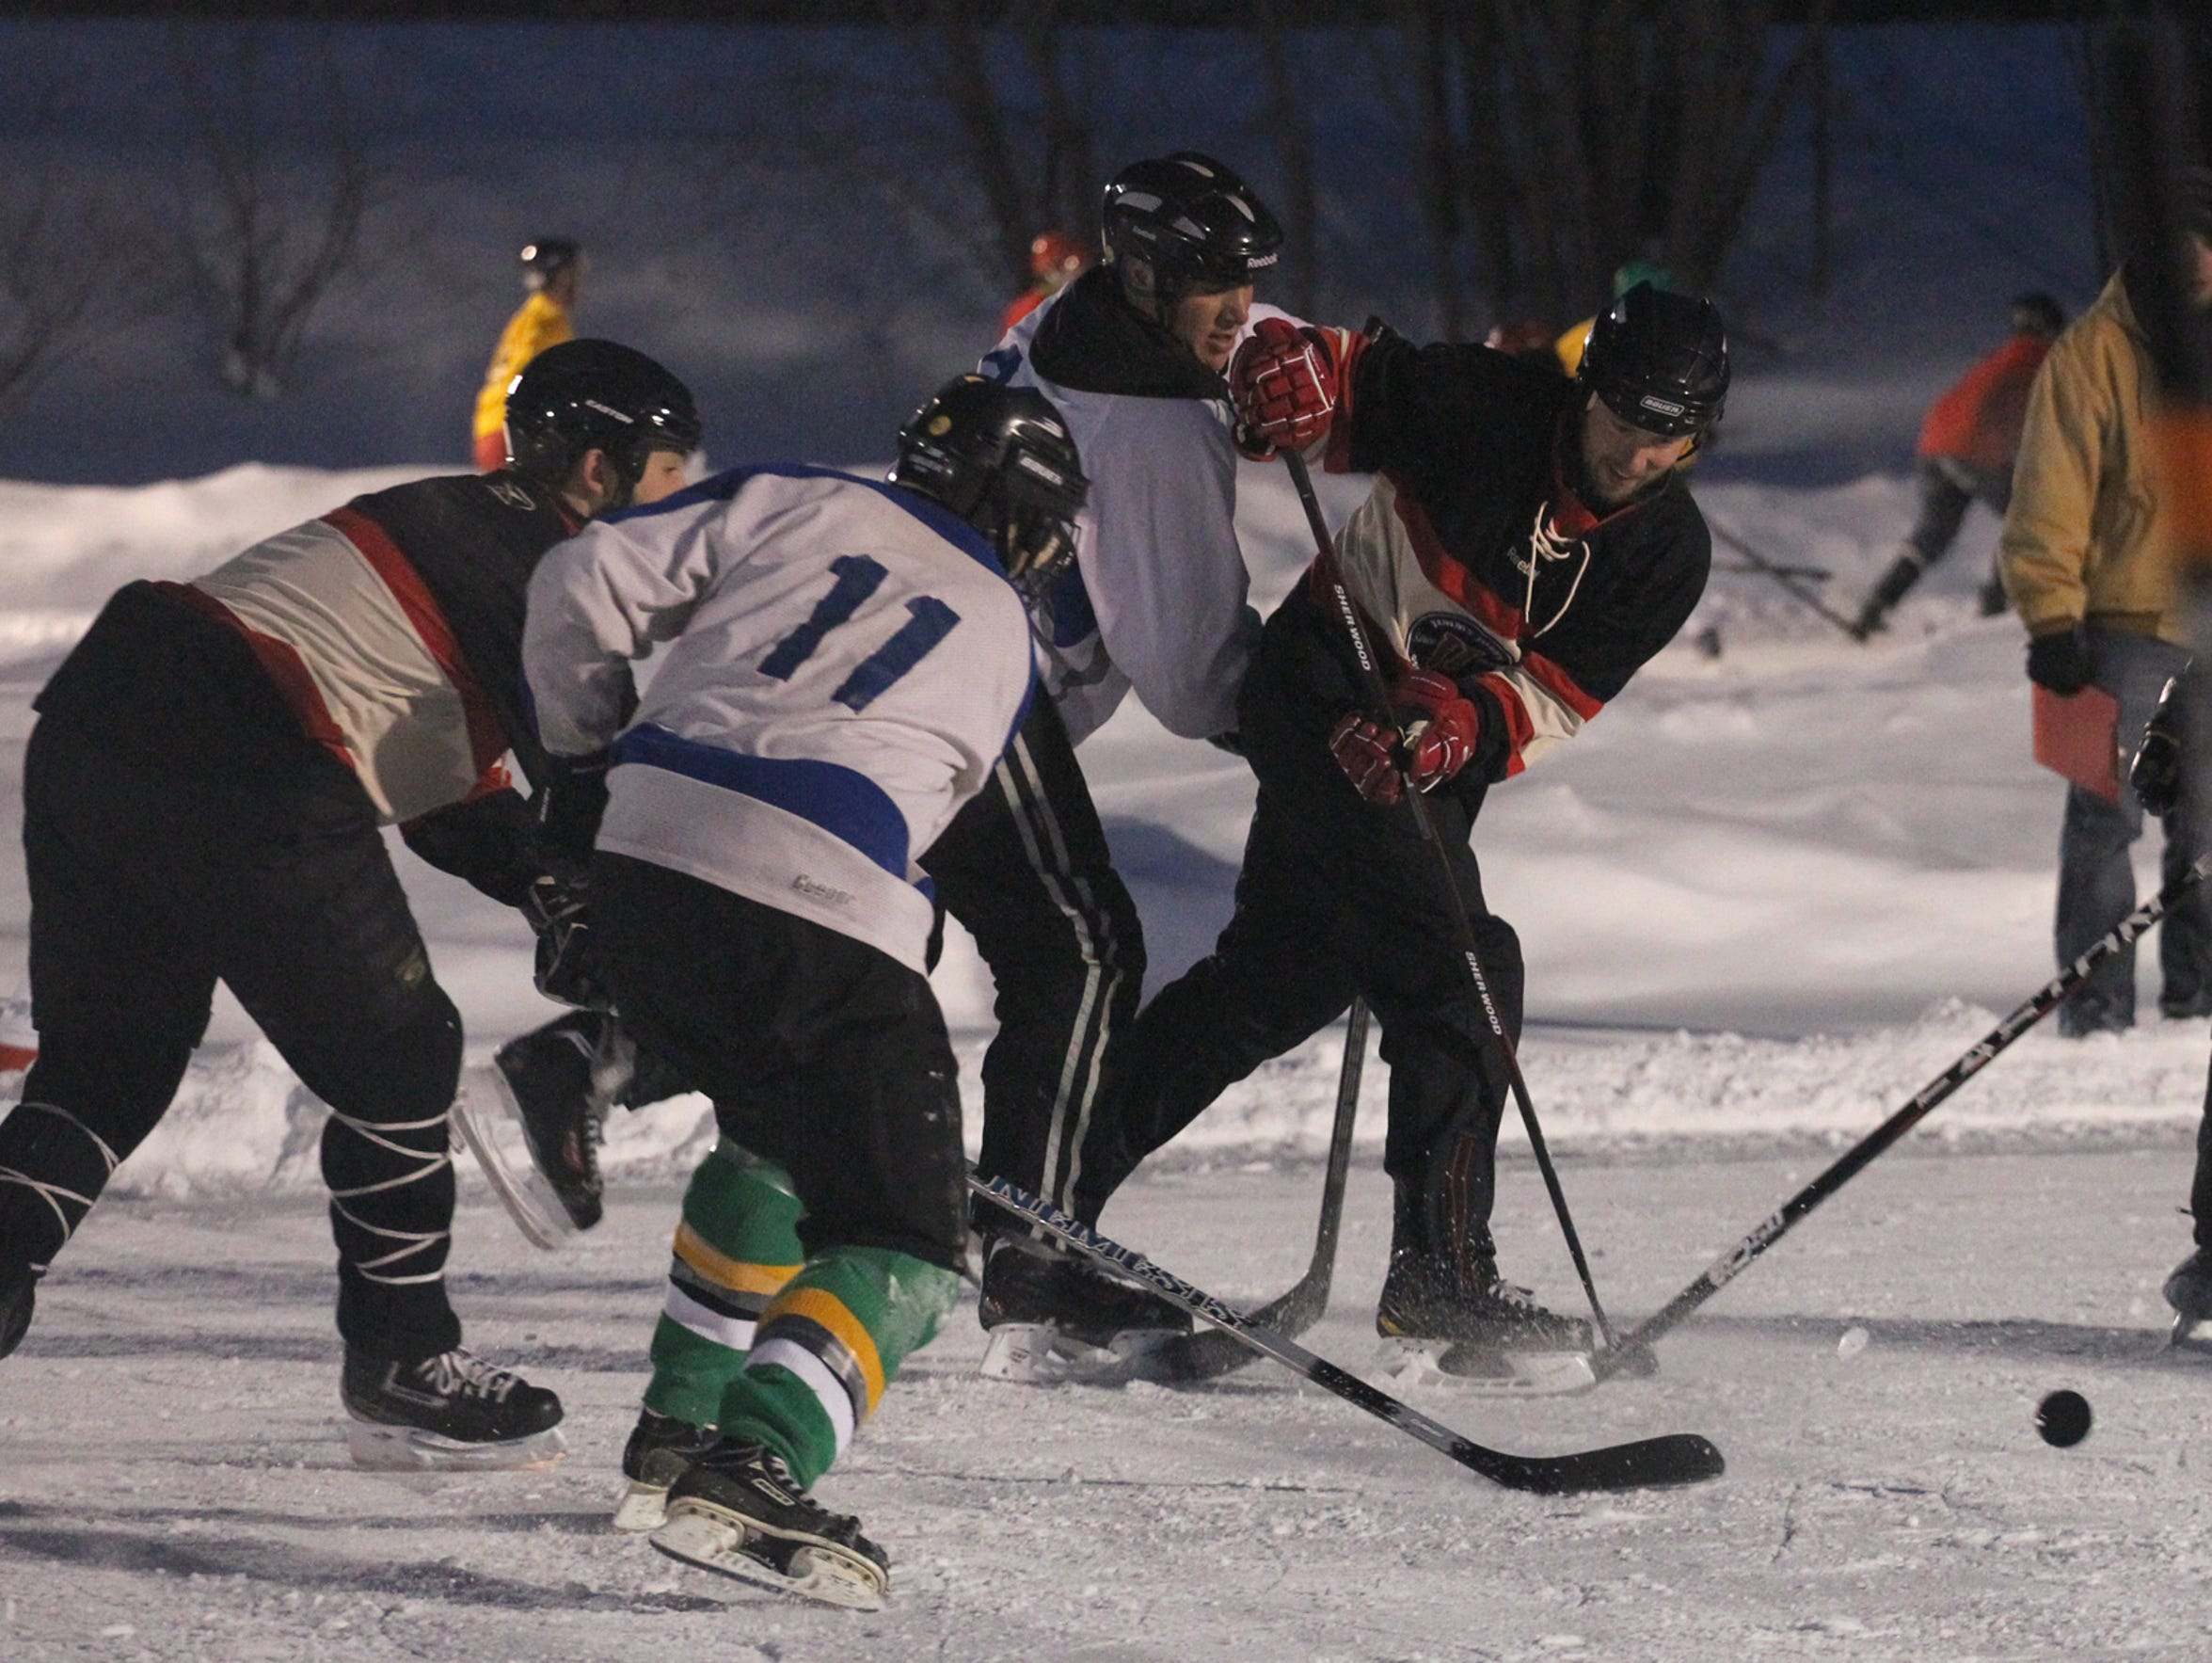 In this 2013 file photo, players battle for the puck